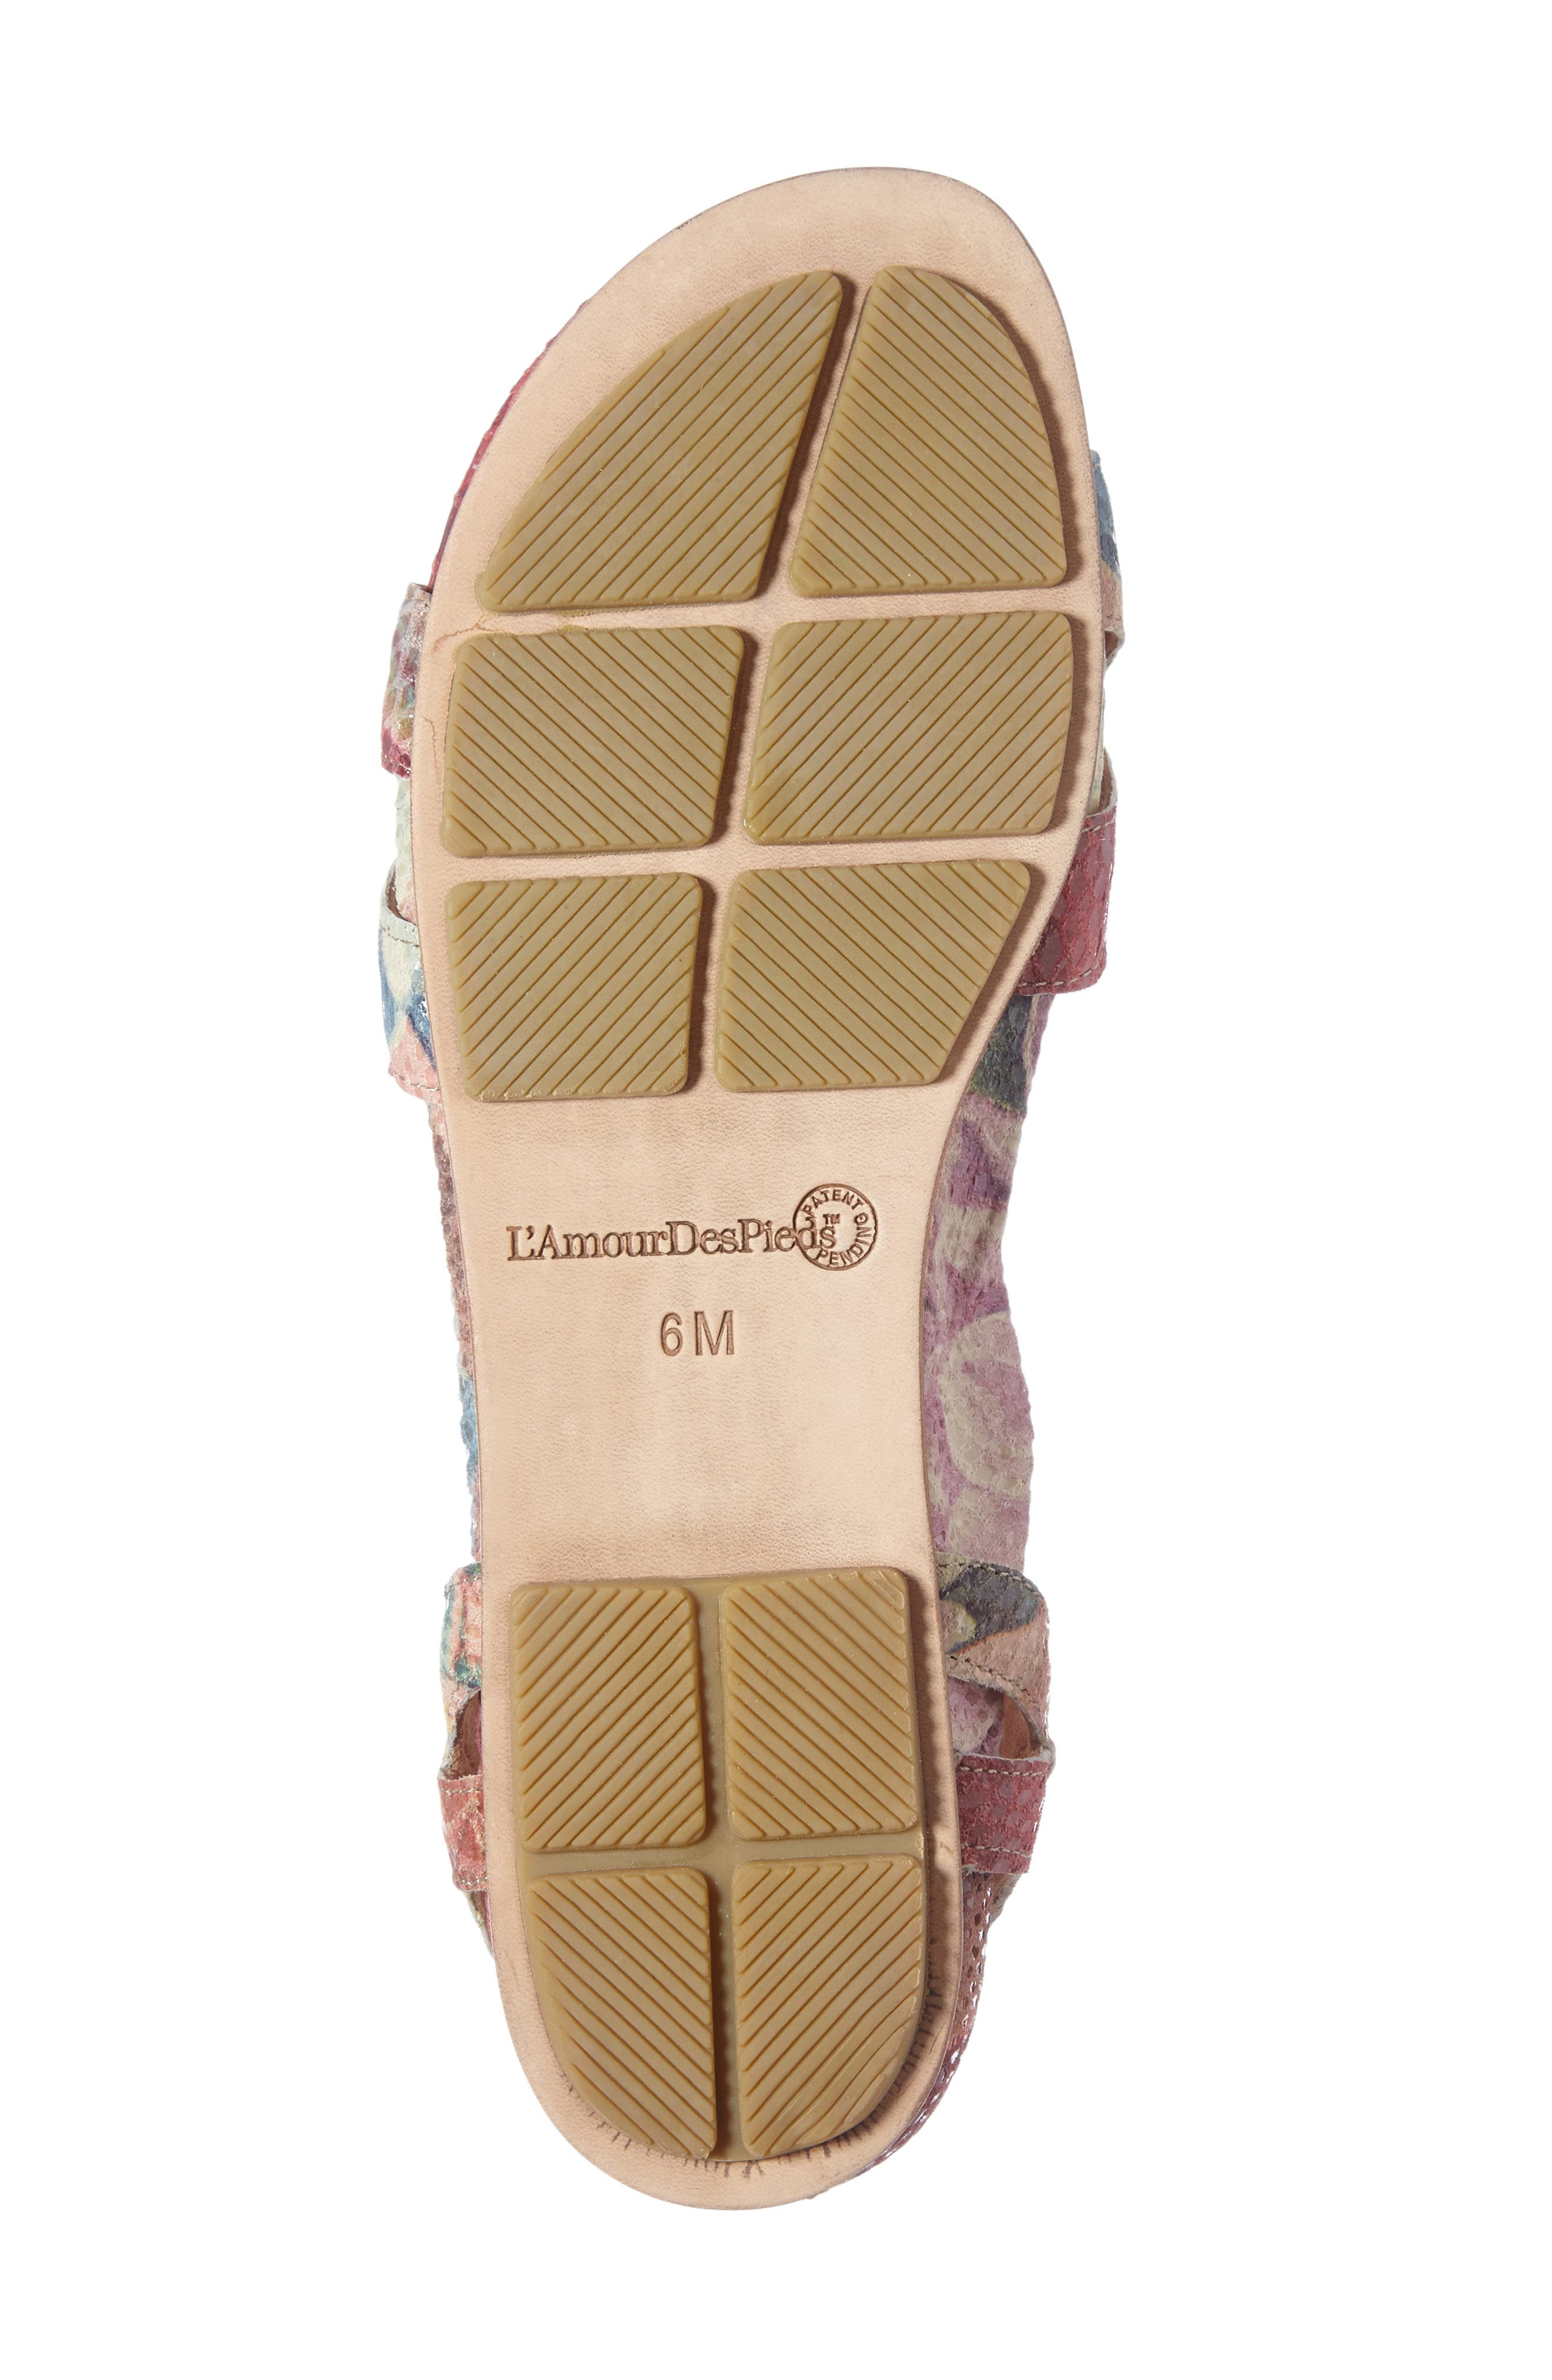 Darrylynn Wraparound Lace-Up Sandal,                             Alternate thumbnail 4, color,                             Bright Multi Printed Leather